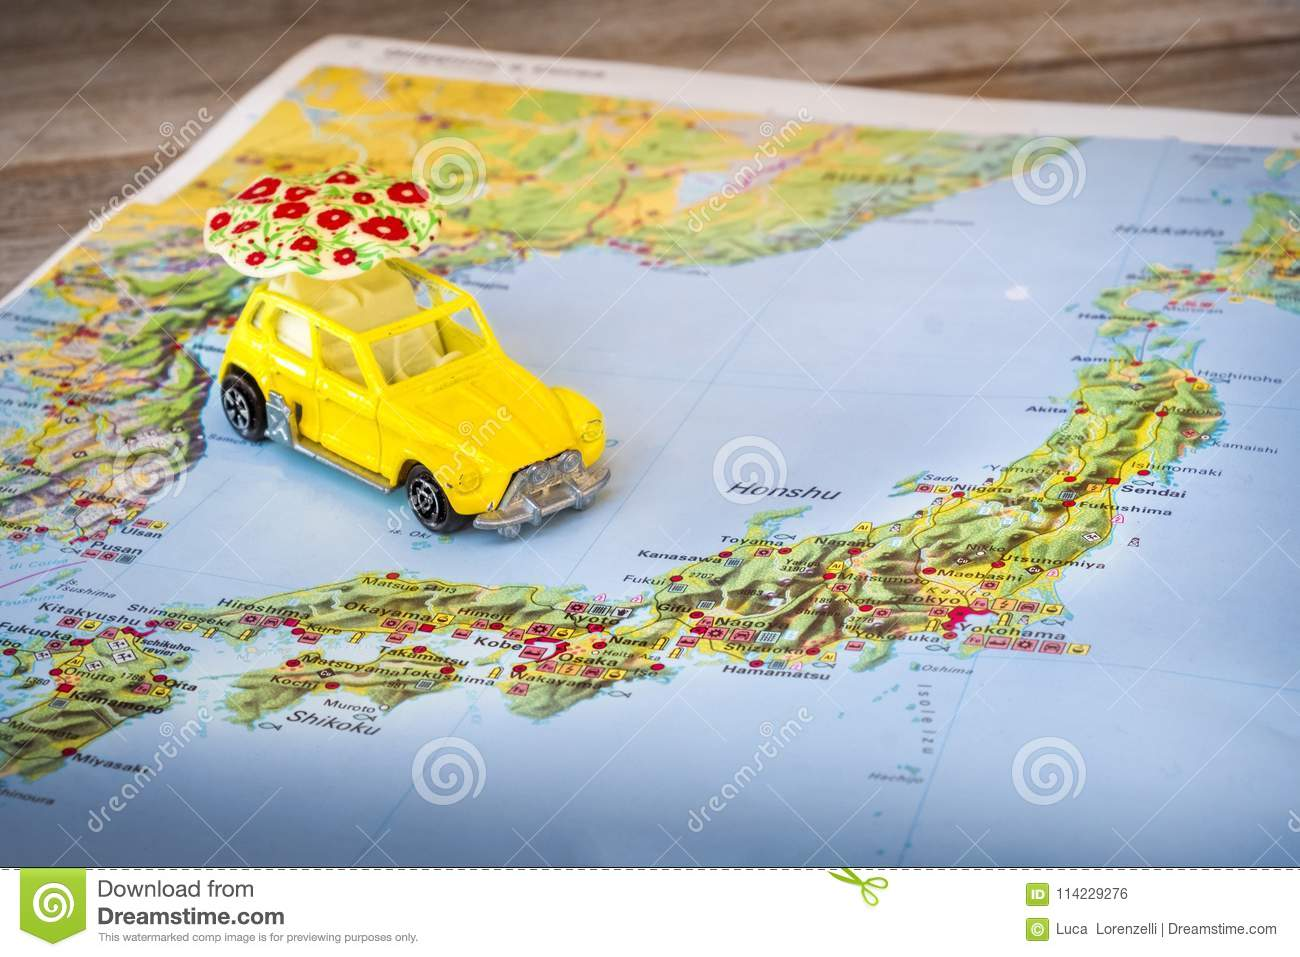 Japan map paper yellow beetle toy car background